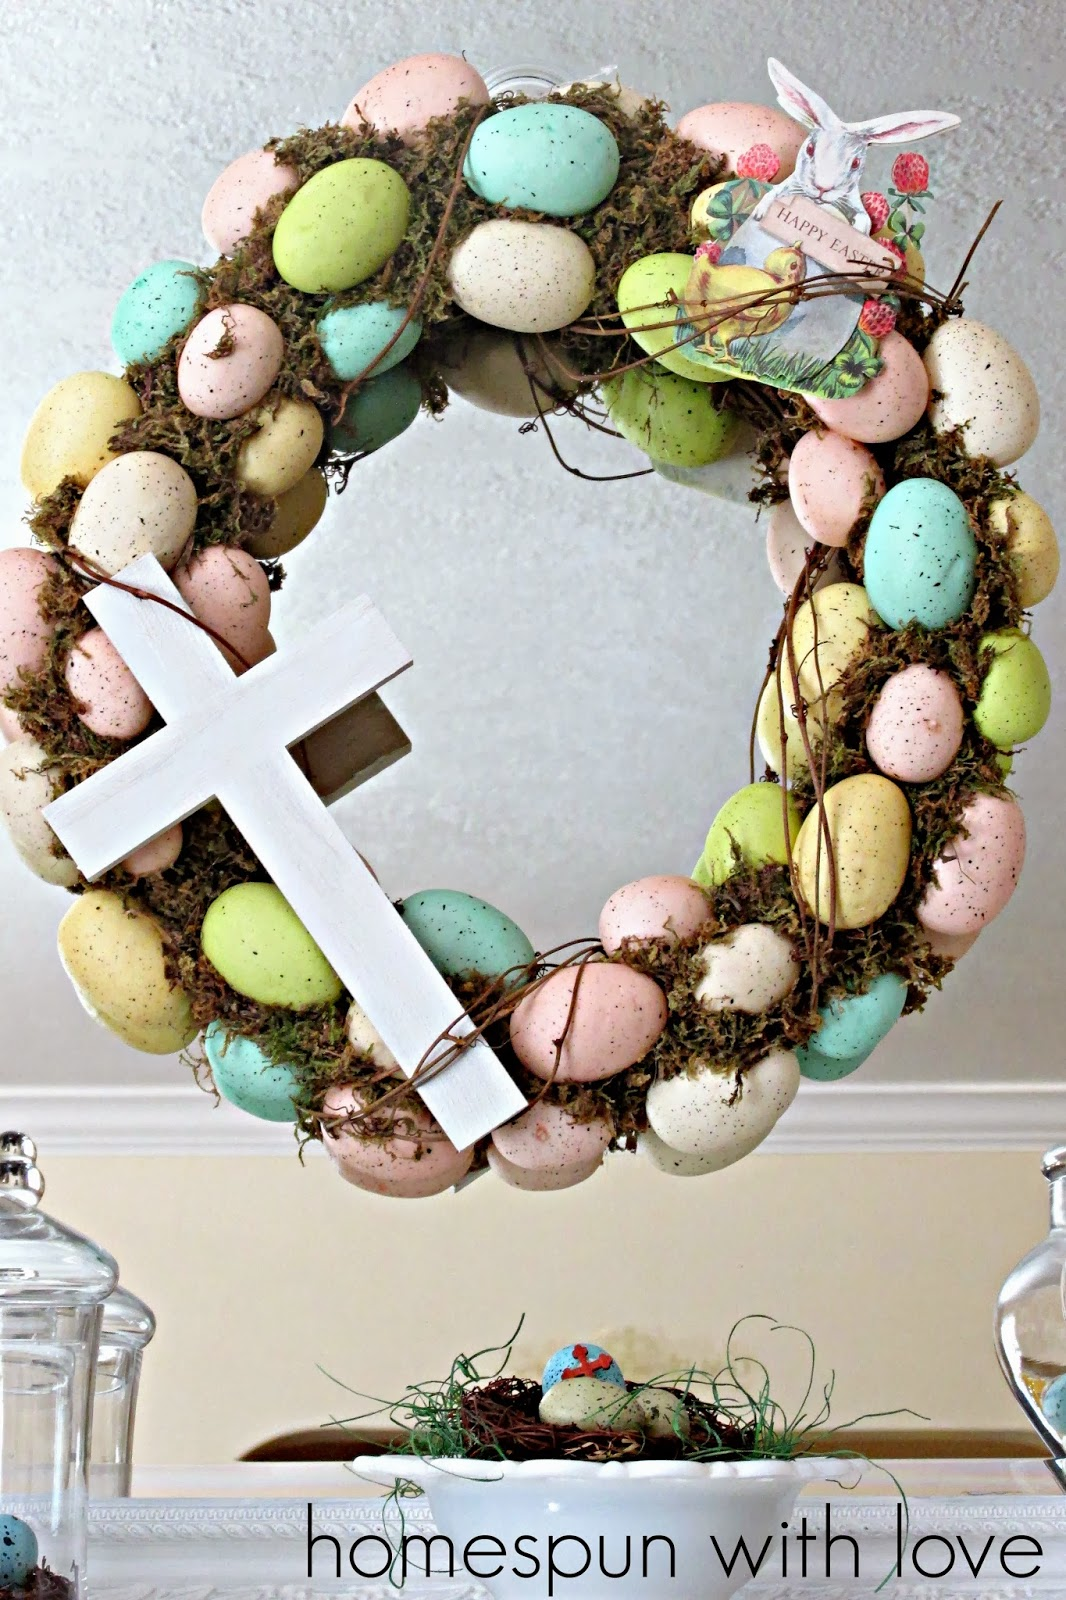 We Painted The Wood Cross White And Tucked It Into Egg Wreath Like That Is Not Permanently Fixed To So Can Use